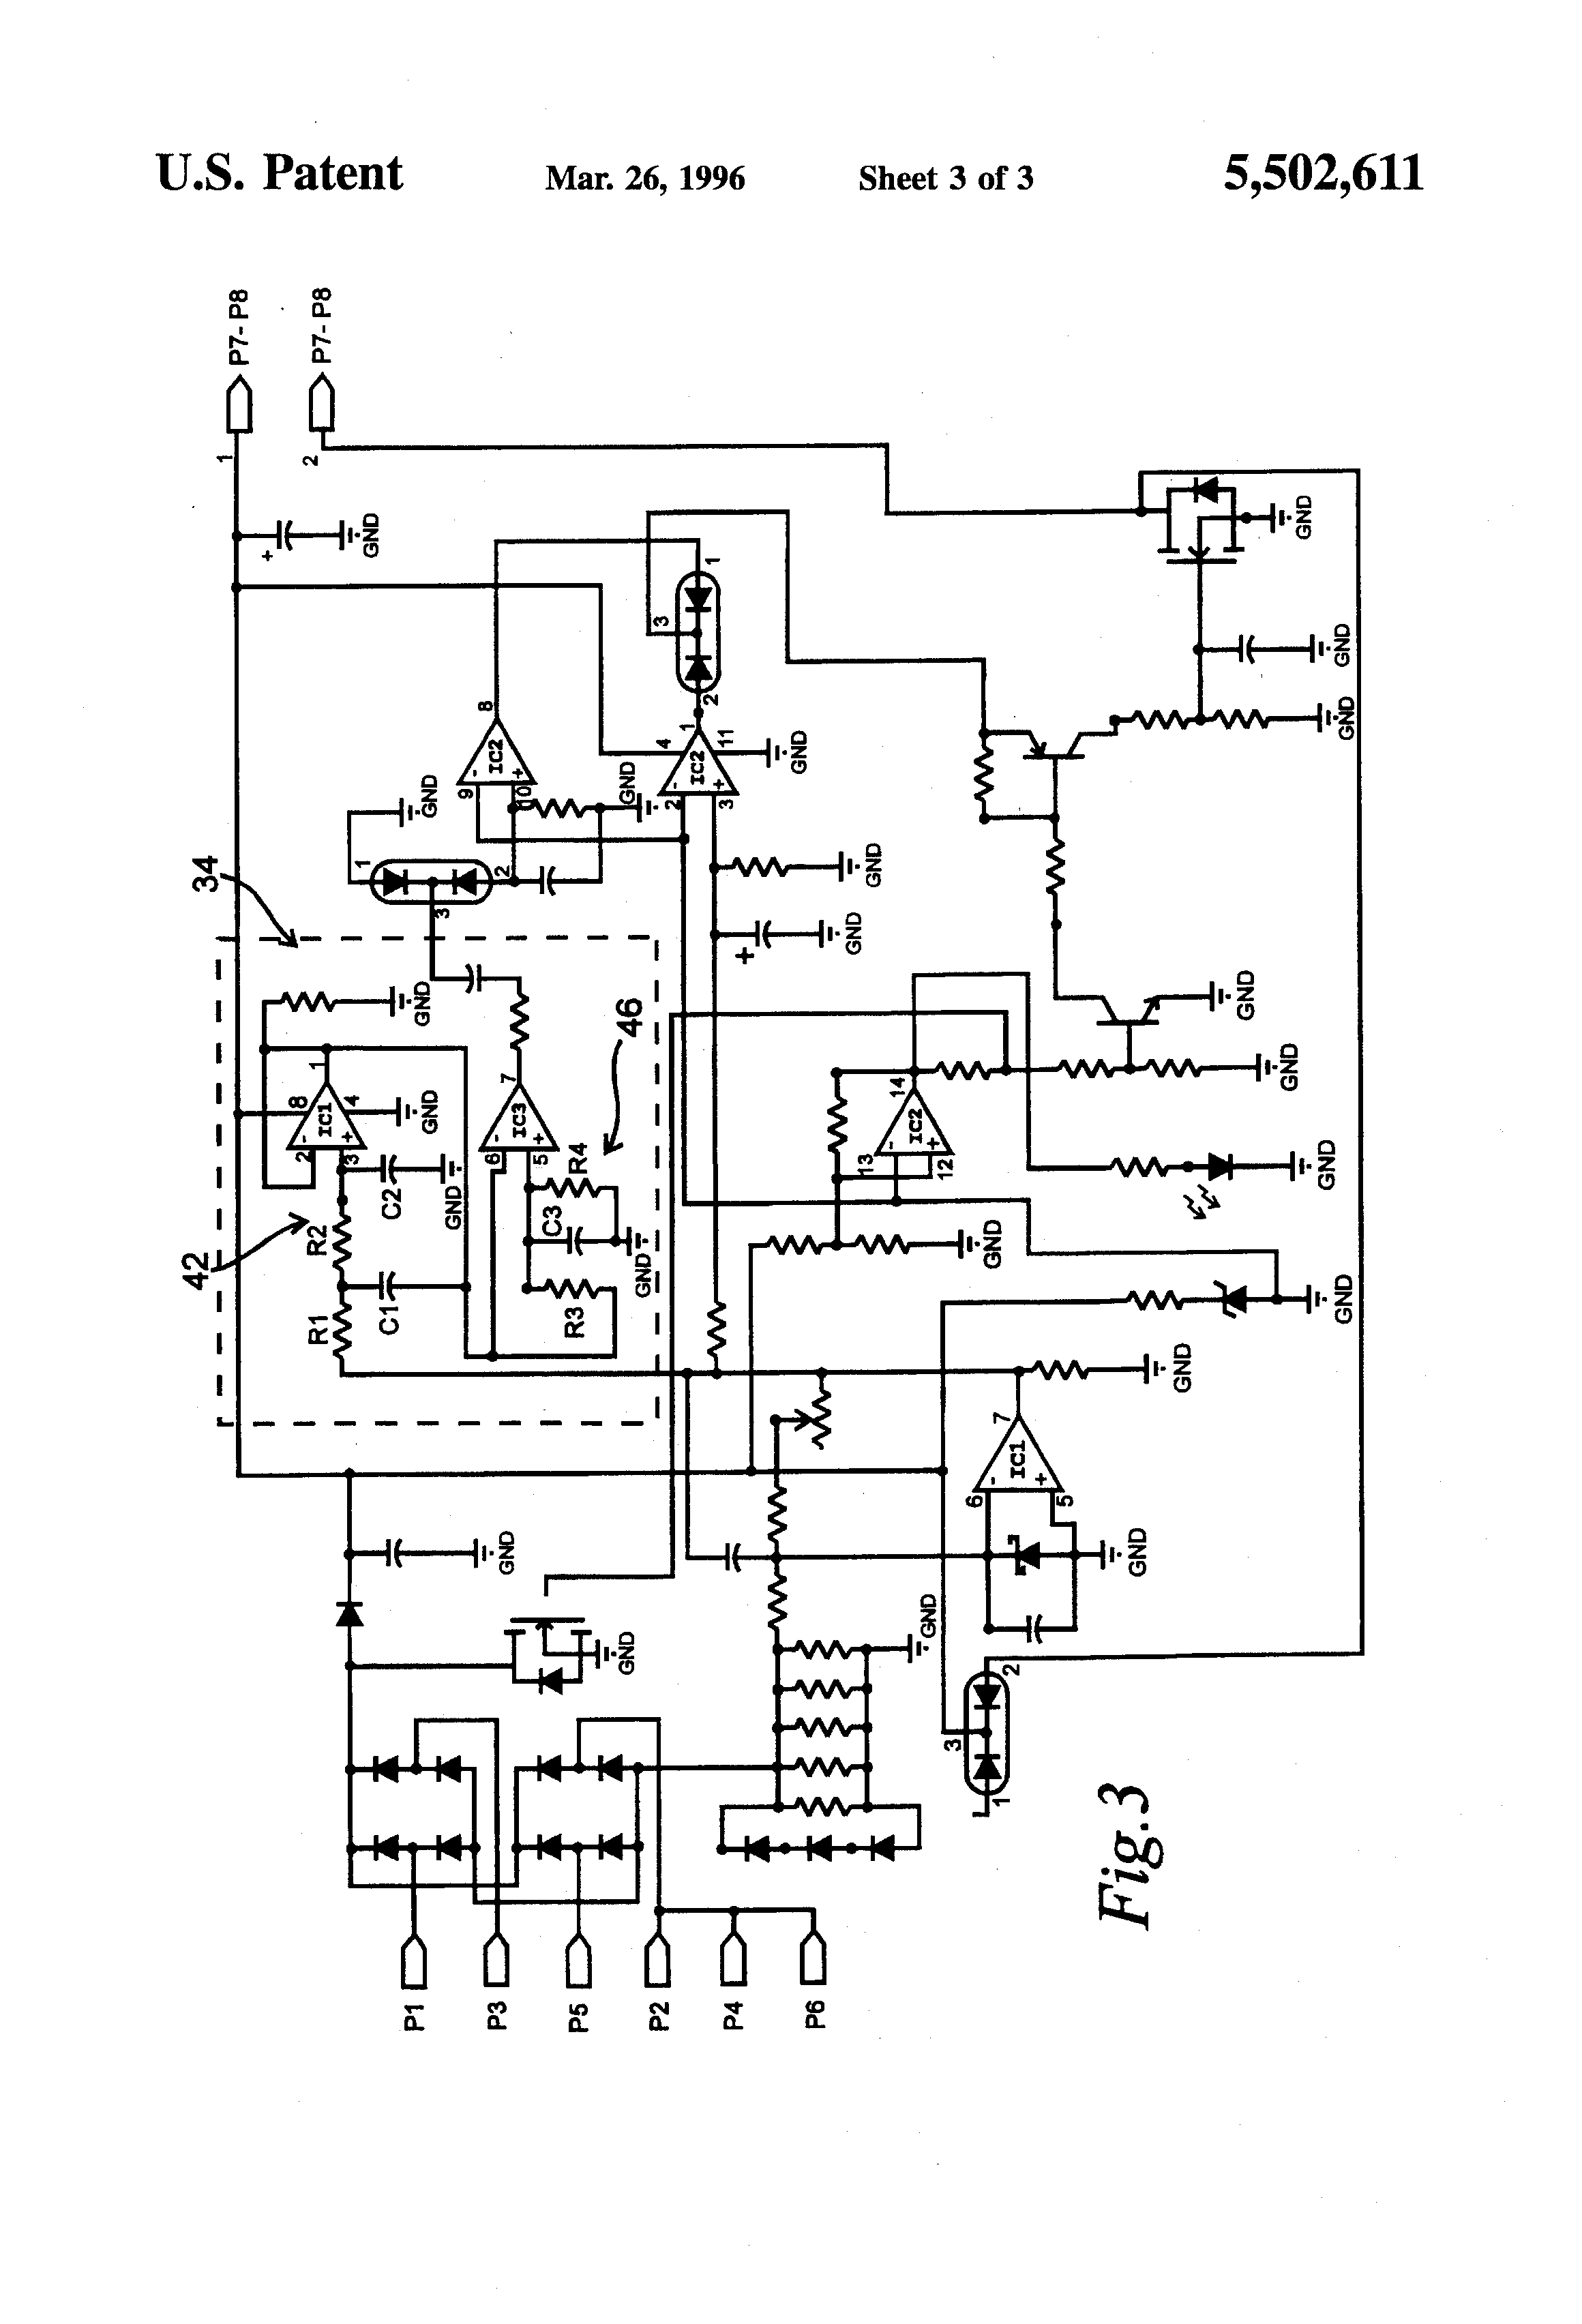 White Rodgers Type 91 Relay Wiring Diagram